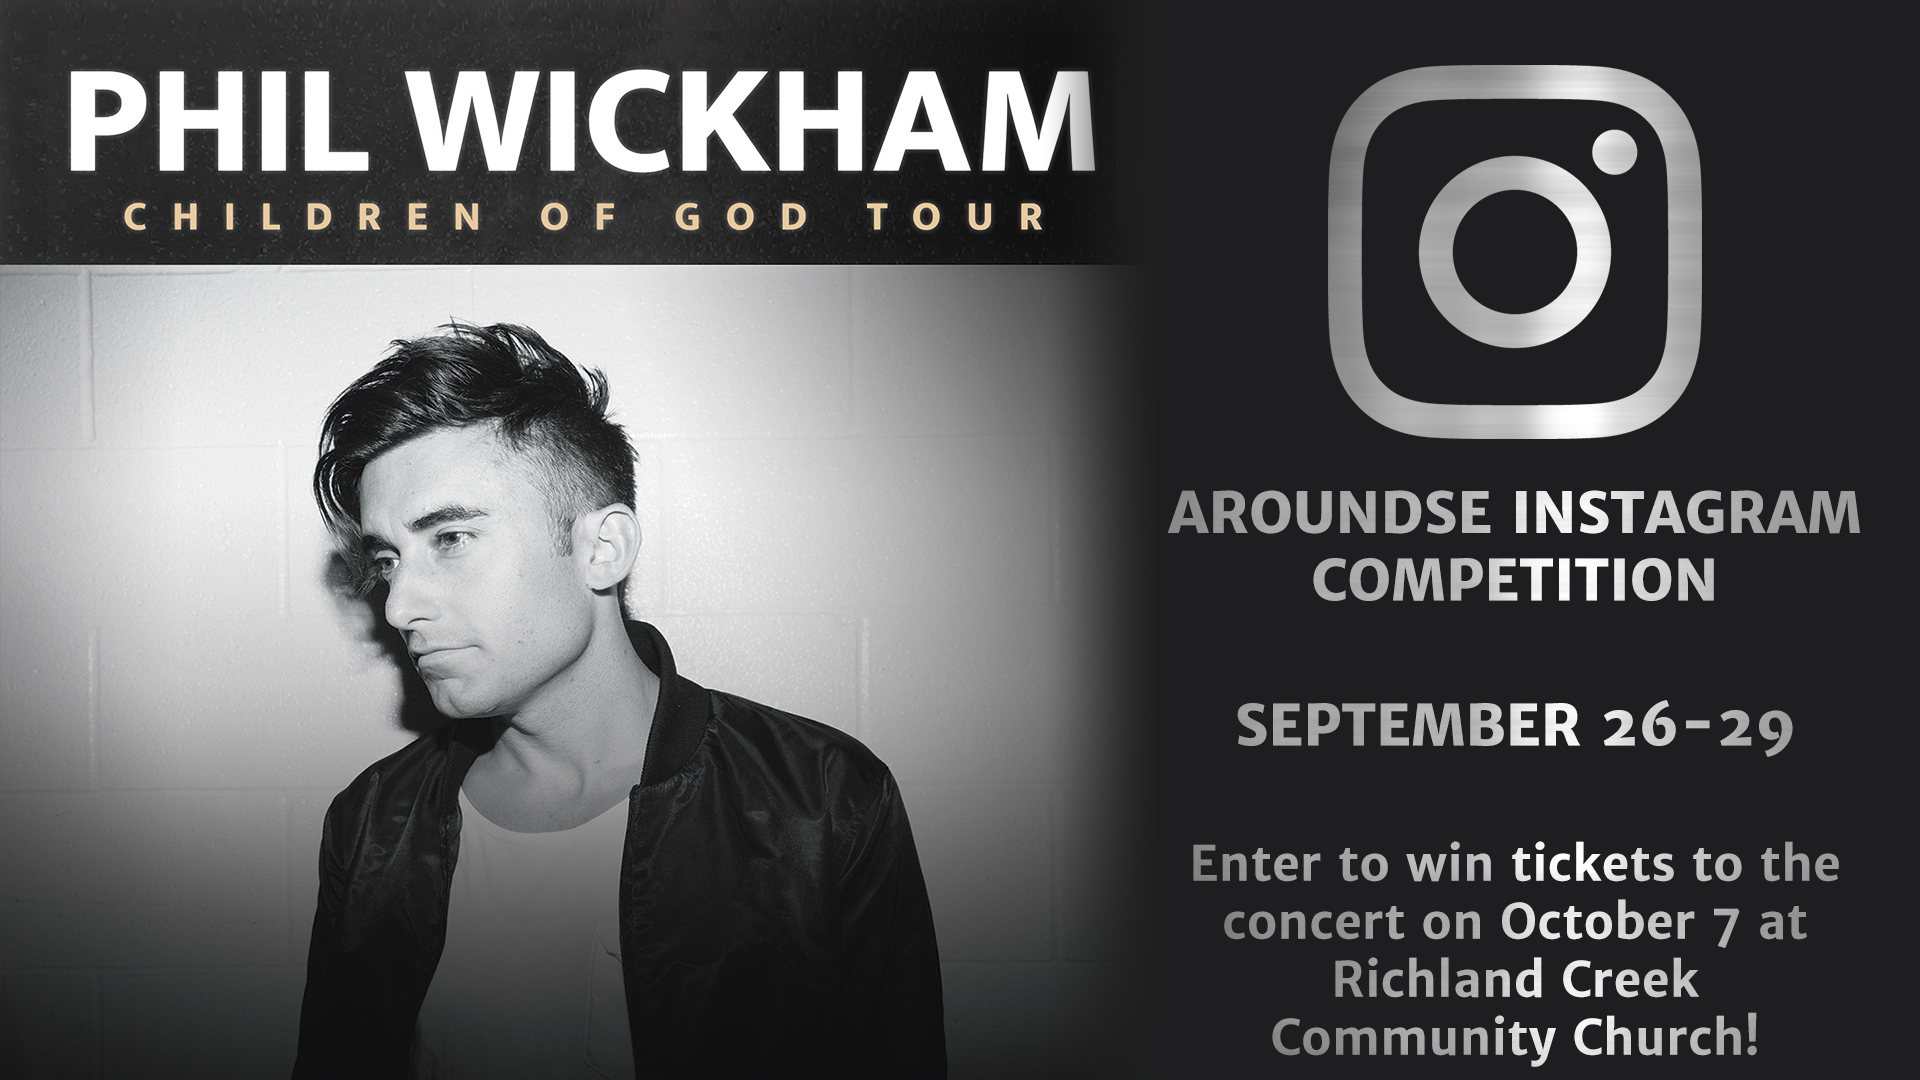 phil-wickham-ig-competition-slide-2